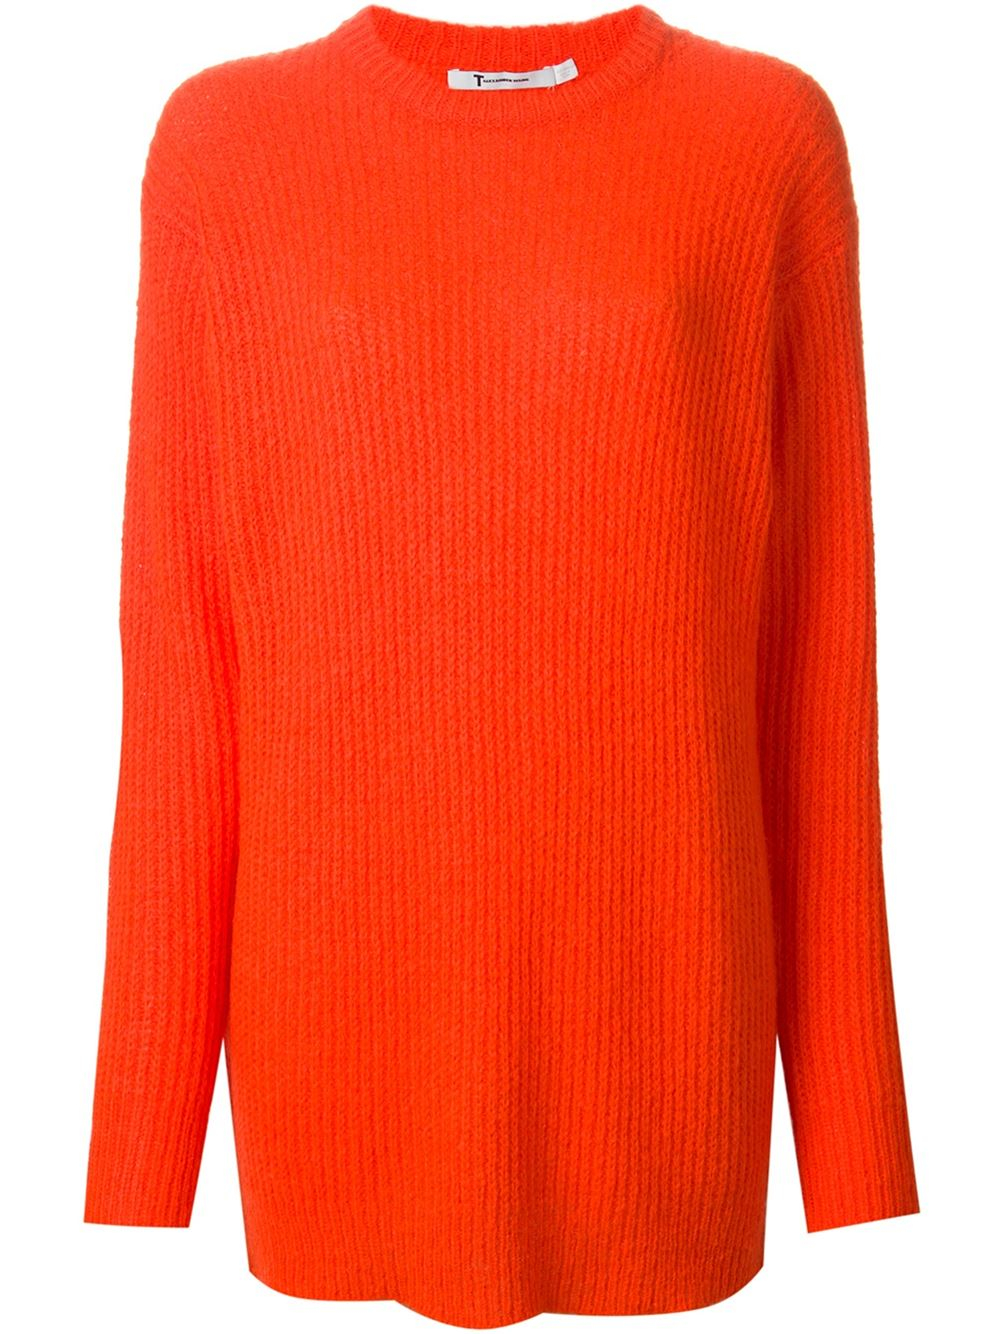 T by alexander wang Ribbed-knit Long Sweater in Red | Lyst